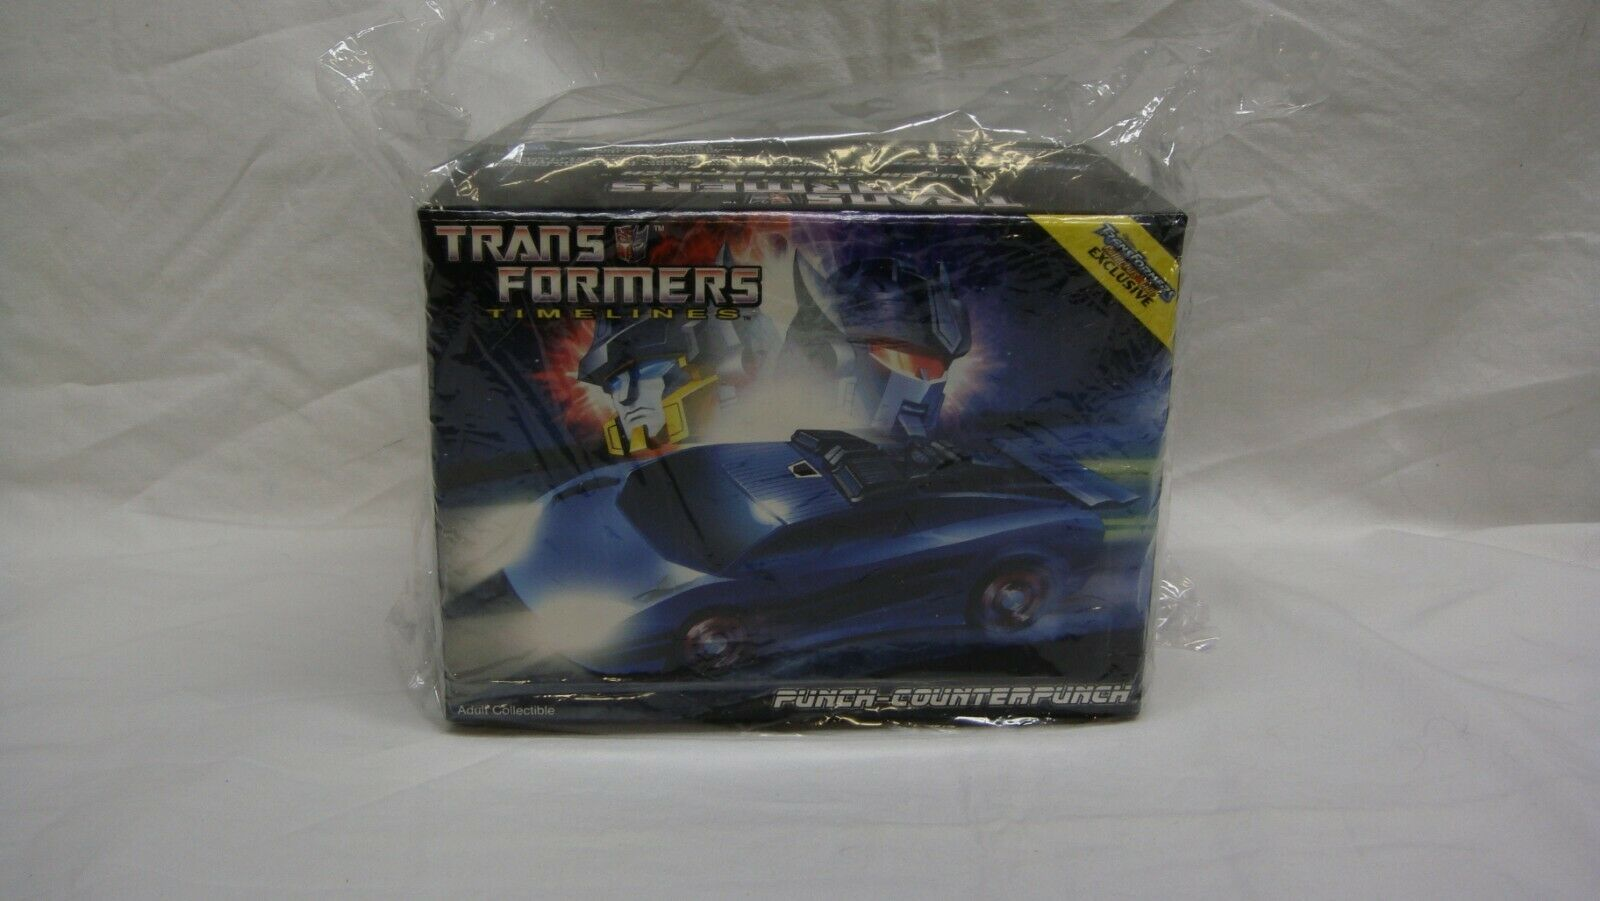 TRANSFORMERS TFCC EXCLUSIVE TIMELINES PUNCH-COUNTERPUNCH NEW MINT IN BOX RARE